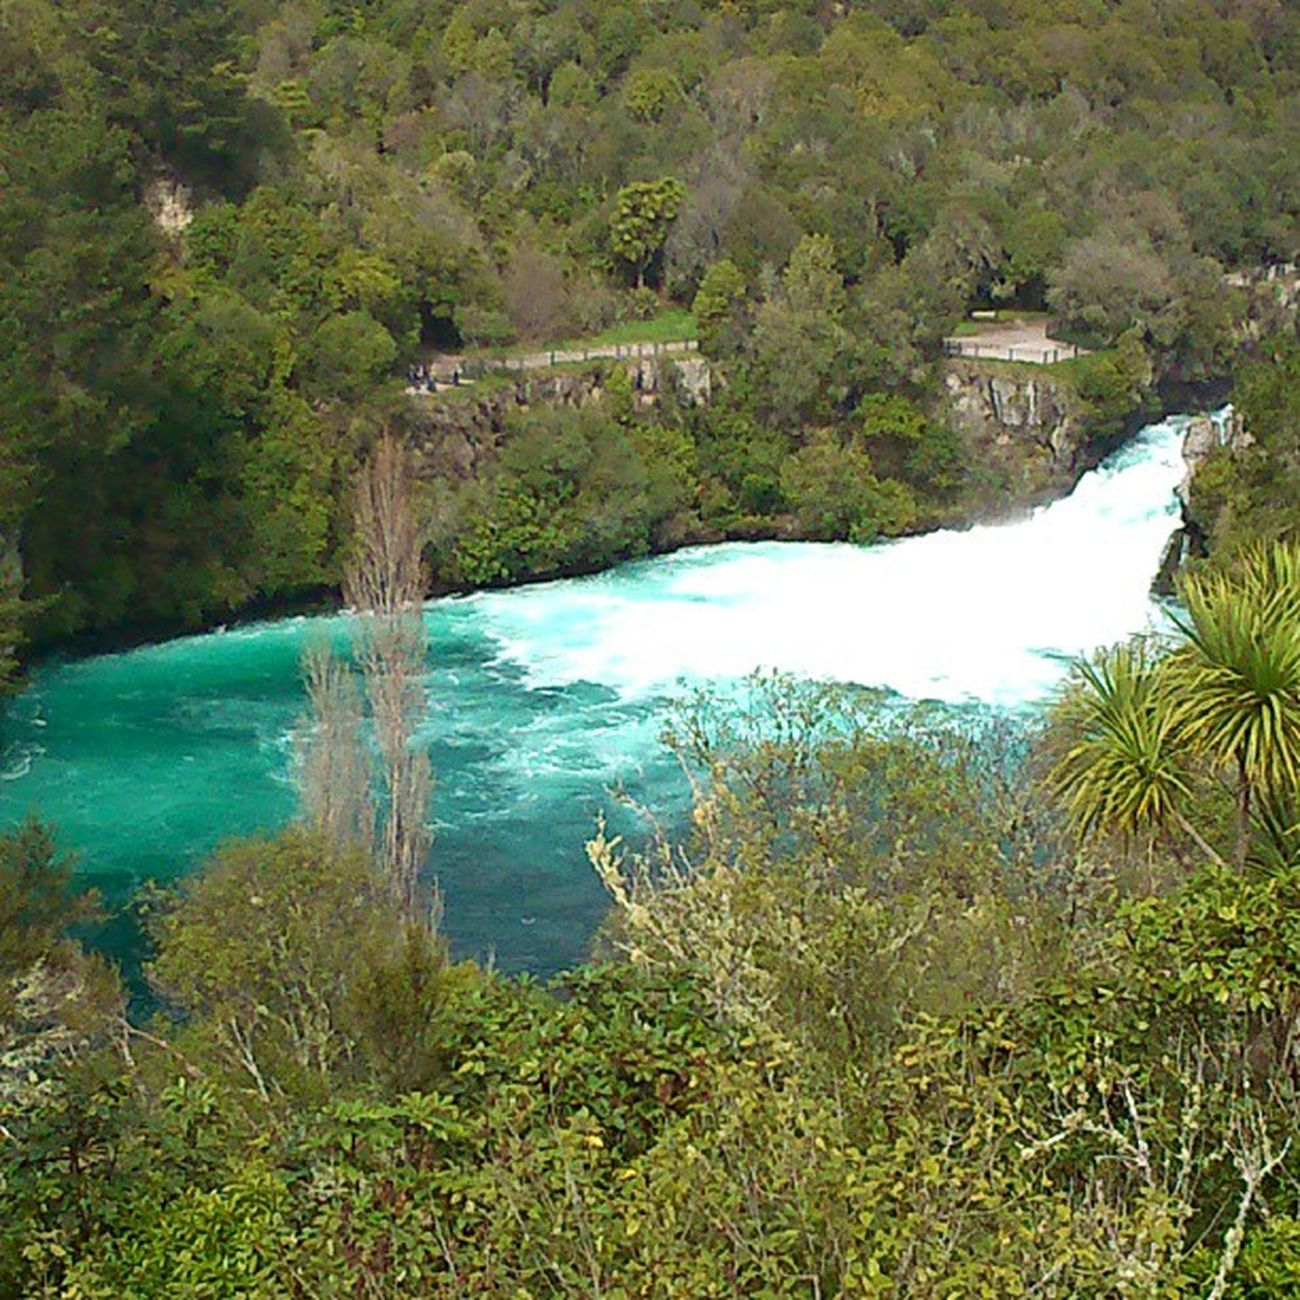 A Nofilter capture of the Clear Waters of NZ 's most visited and photographed tourist attraction, apparently... Huka falls